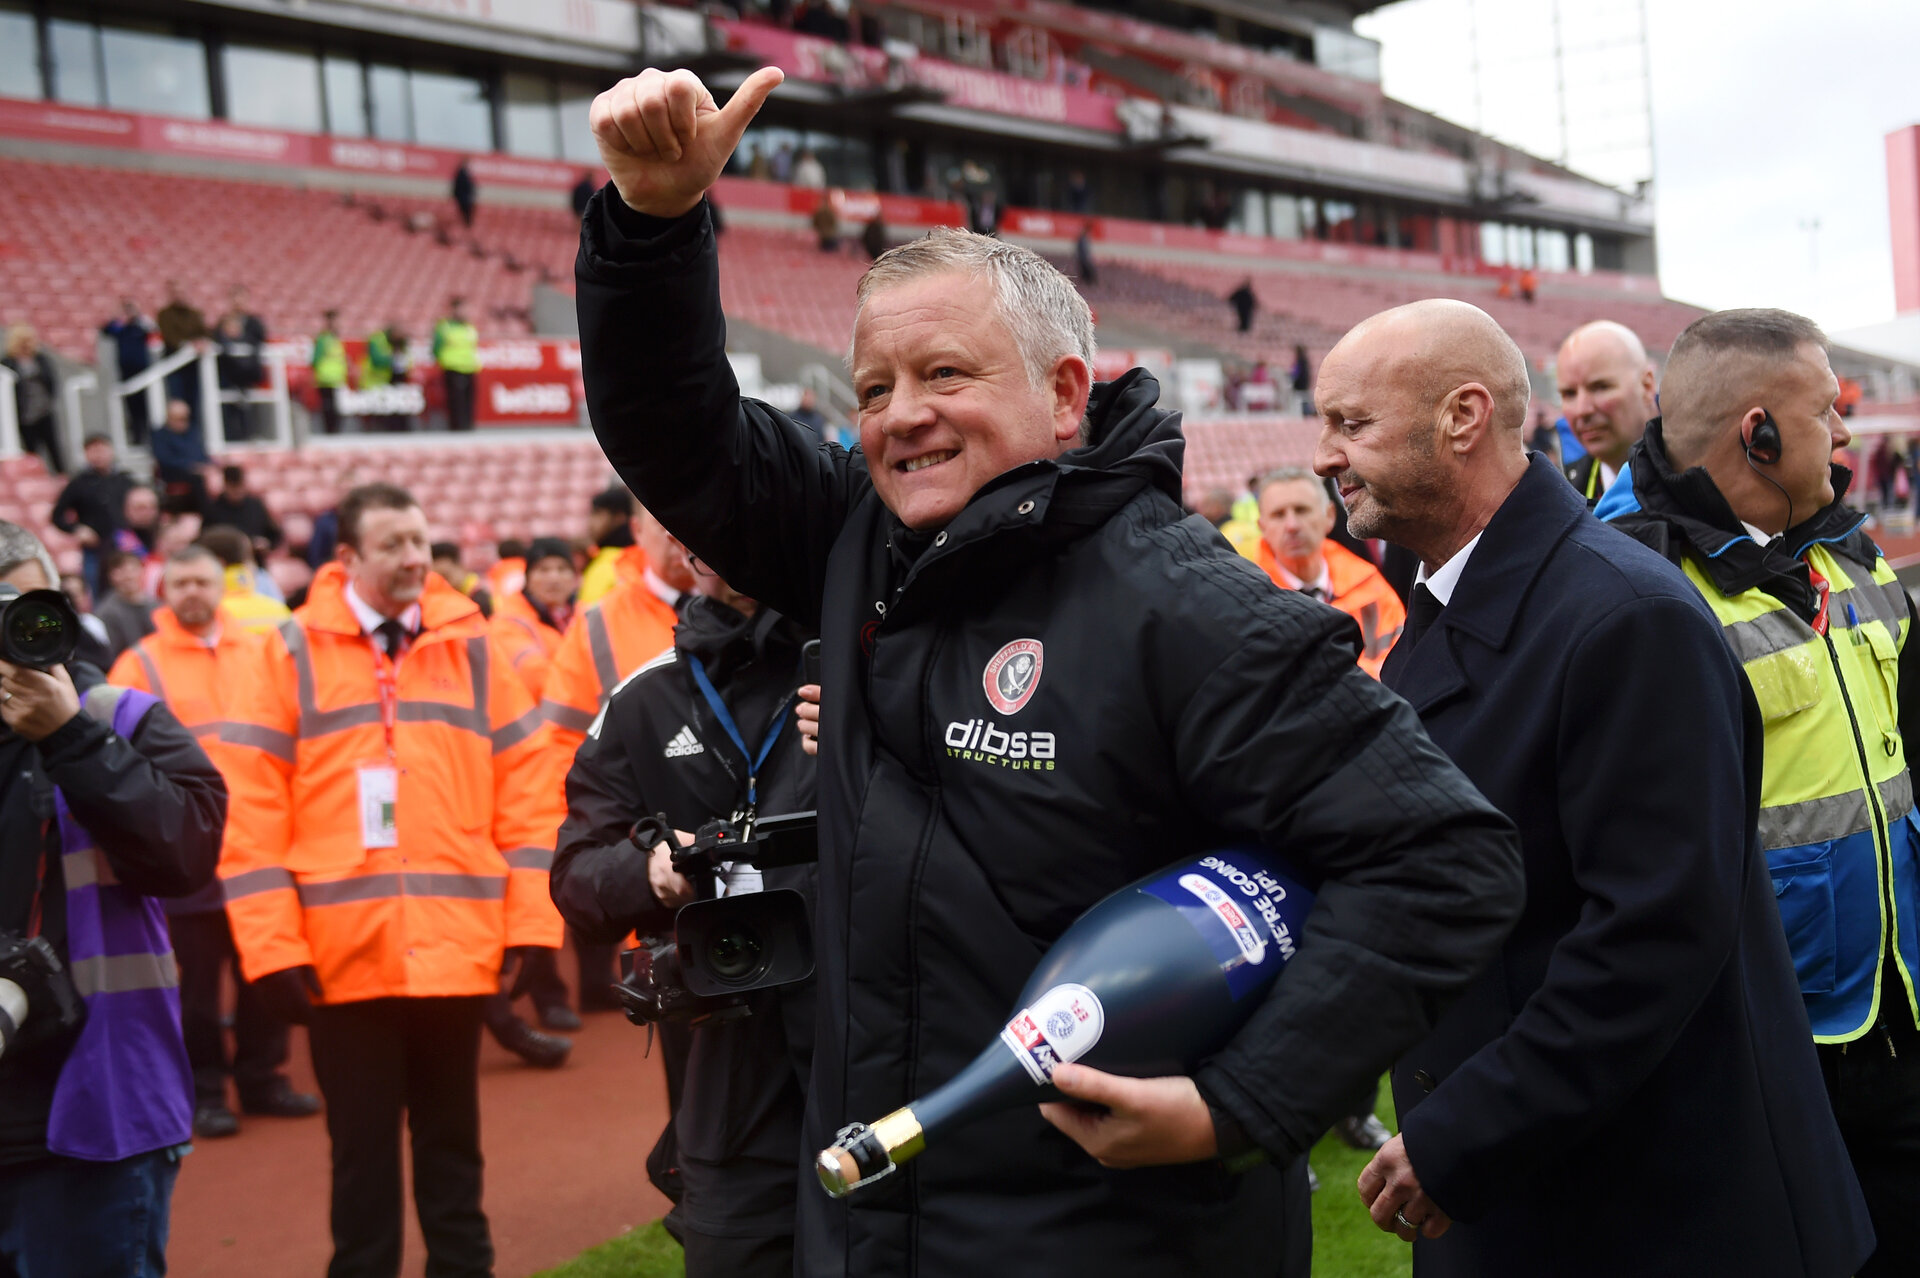 STOKE ON TRENT, ENGLAND - MAY 05:  Chris Wilder, Manager of Sheffield United celebrates their promotion after the Sky Bet Championship match between Stoke City and Sheffield United at Bet365 Stadium on May 05, 2019 in Stoke on Trent, England. (Photo by Nathan Stirk/Getty Images)